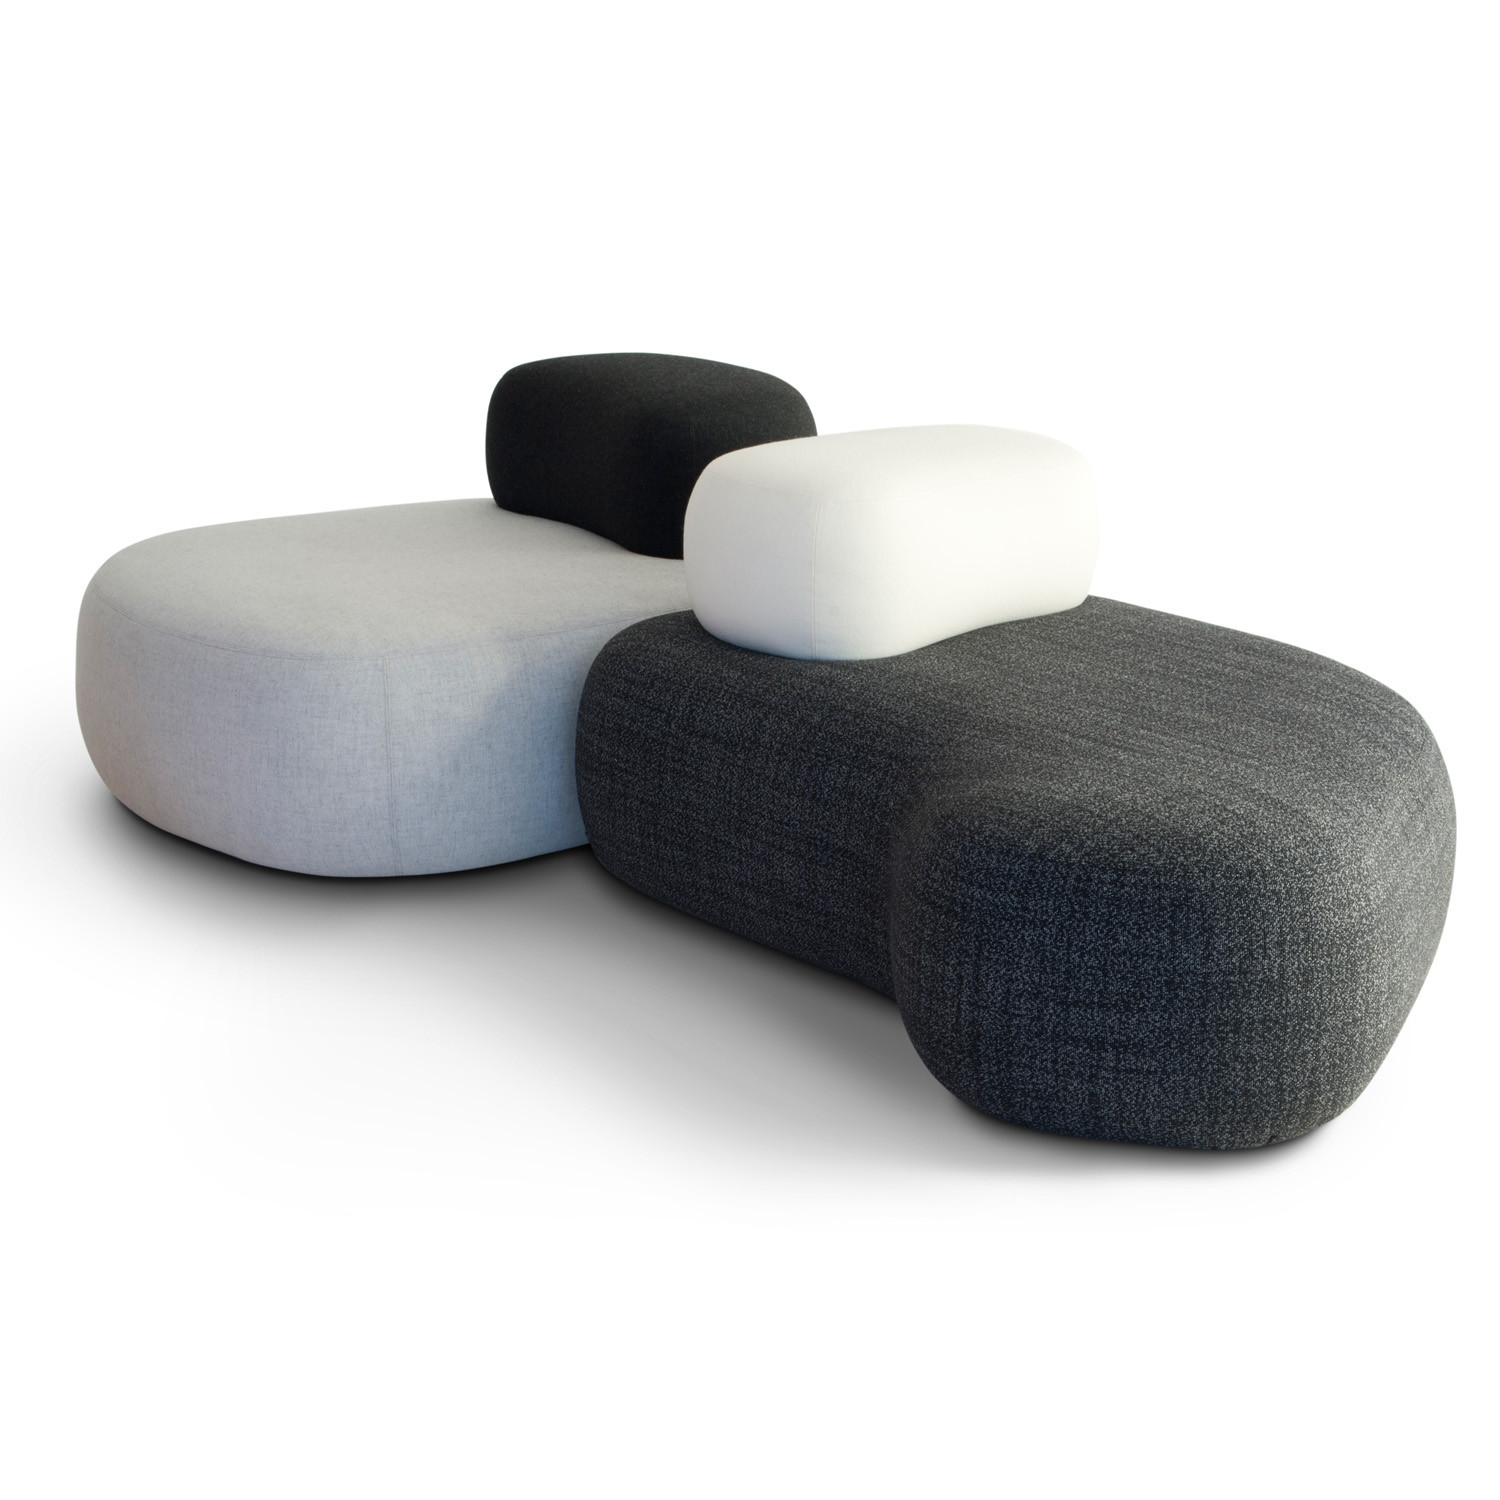 HM63 Organic Pebble Seating